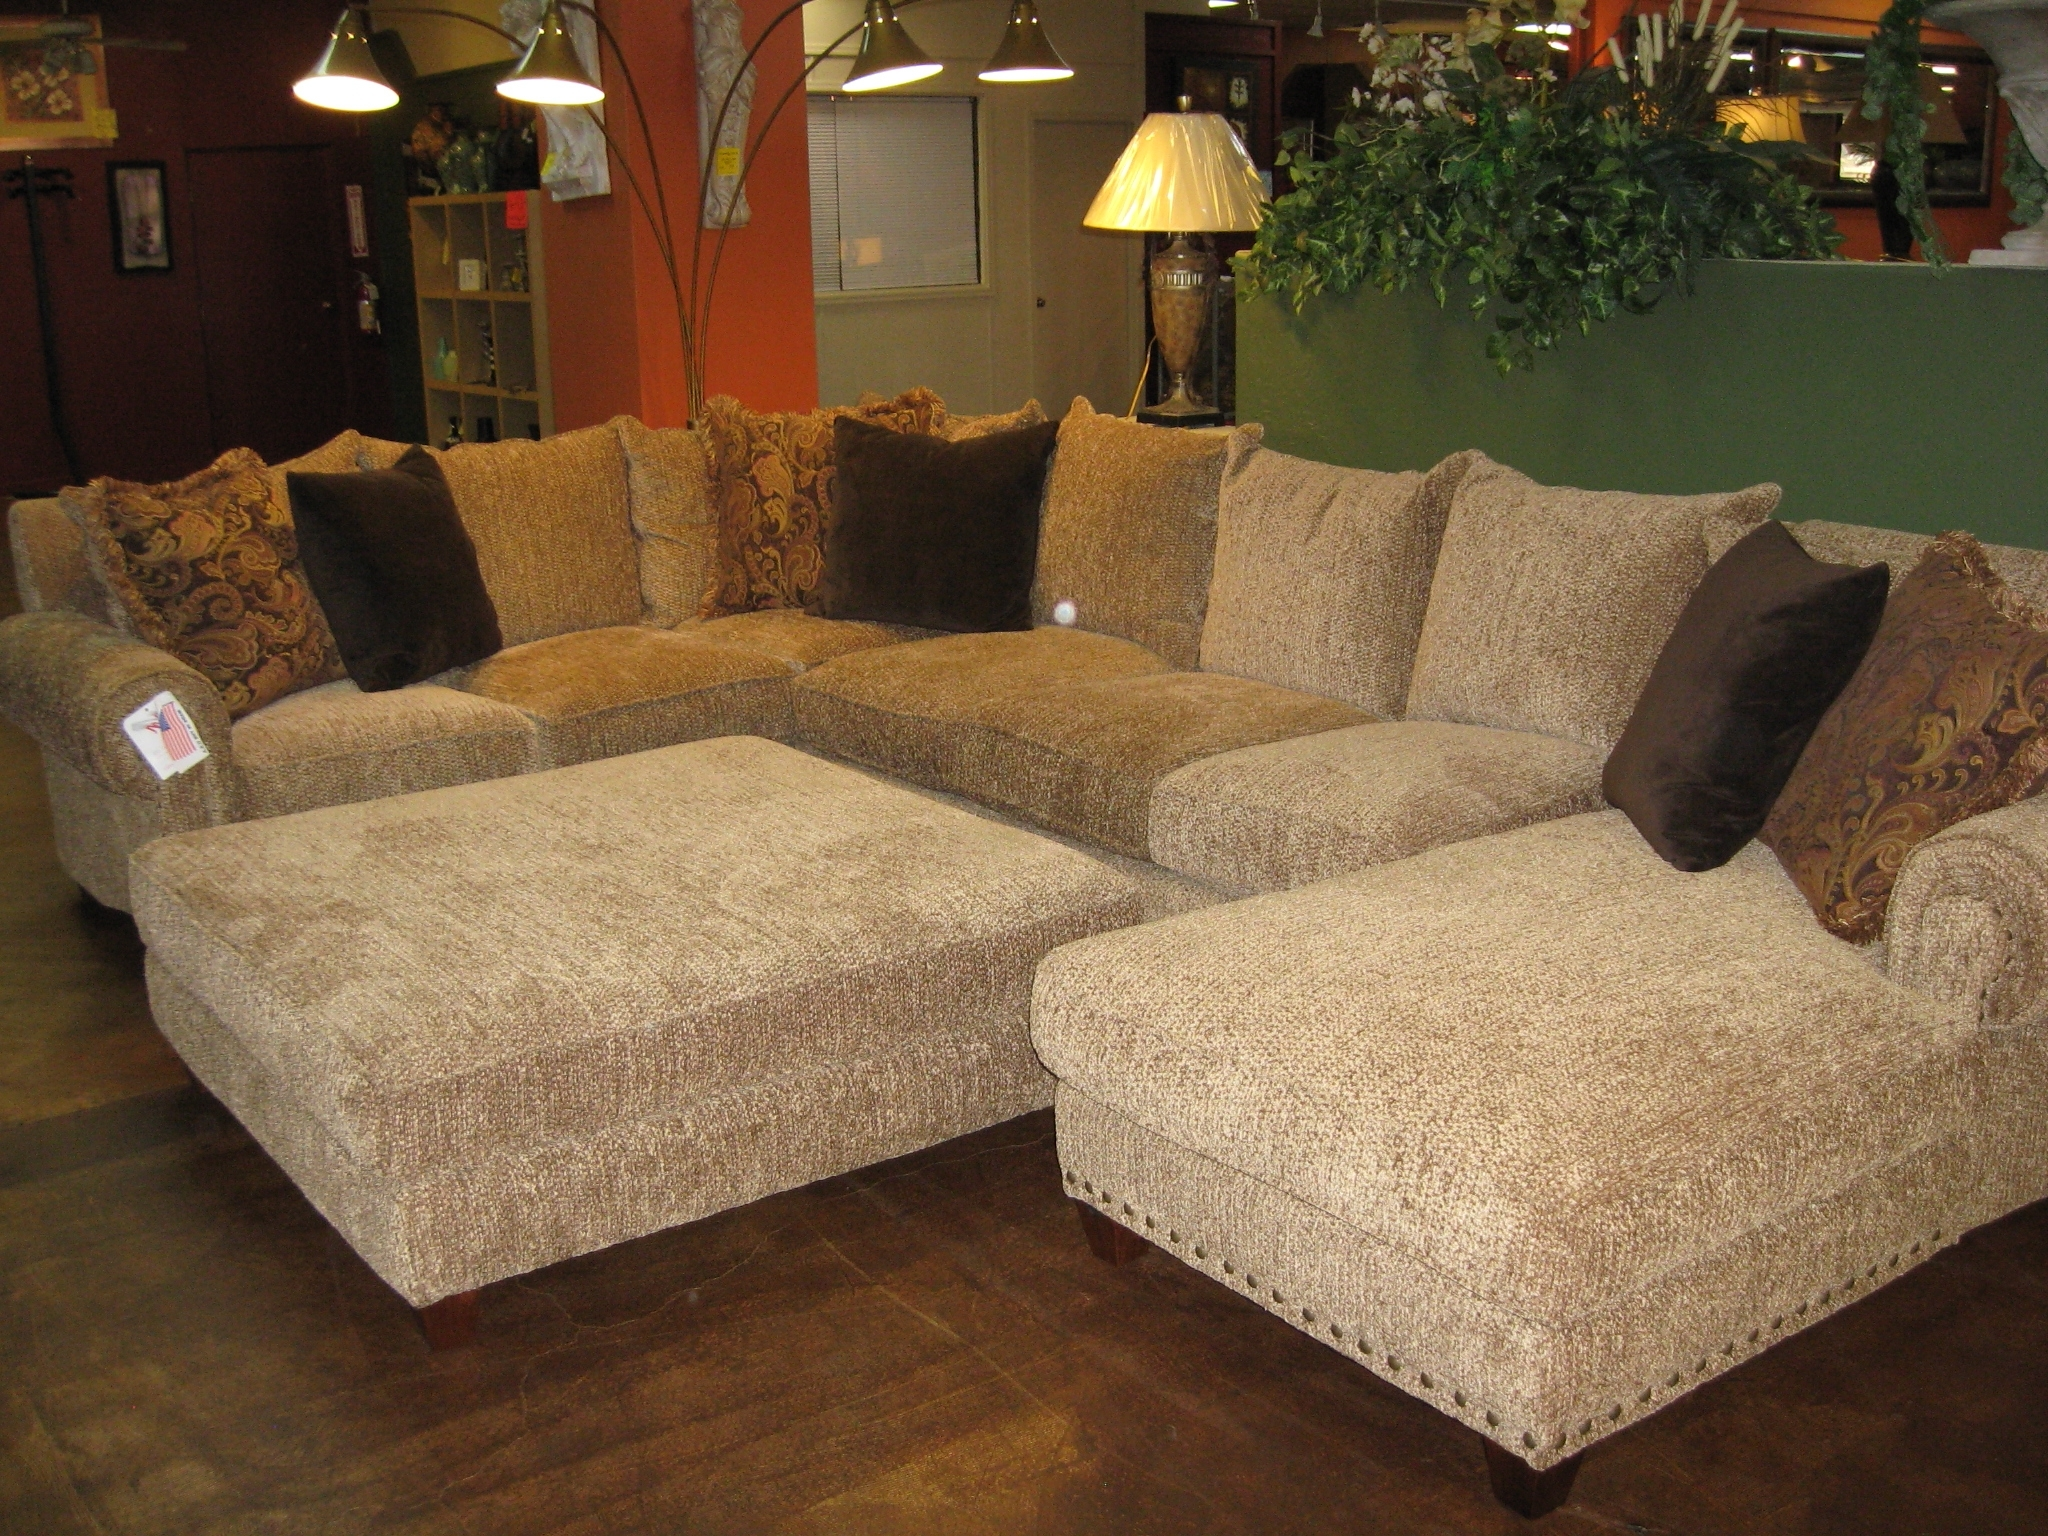 Elegant Large Sectional Sofa With Ottoman 52 With Additional For 2018 Couches With Large Ottoman (View 8 of 15)